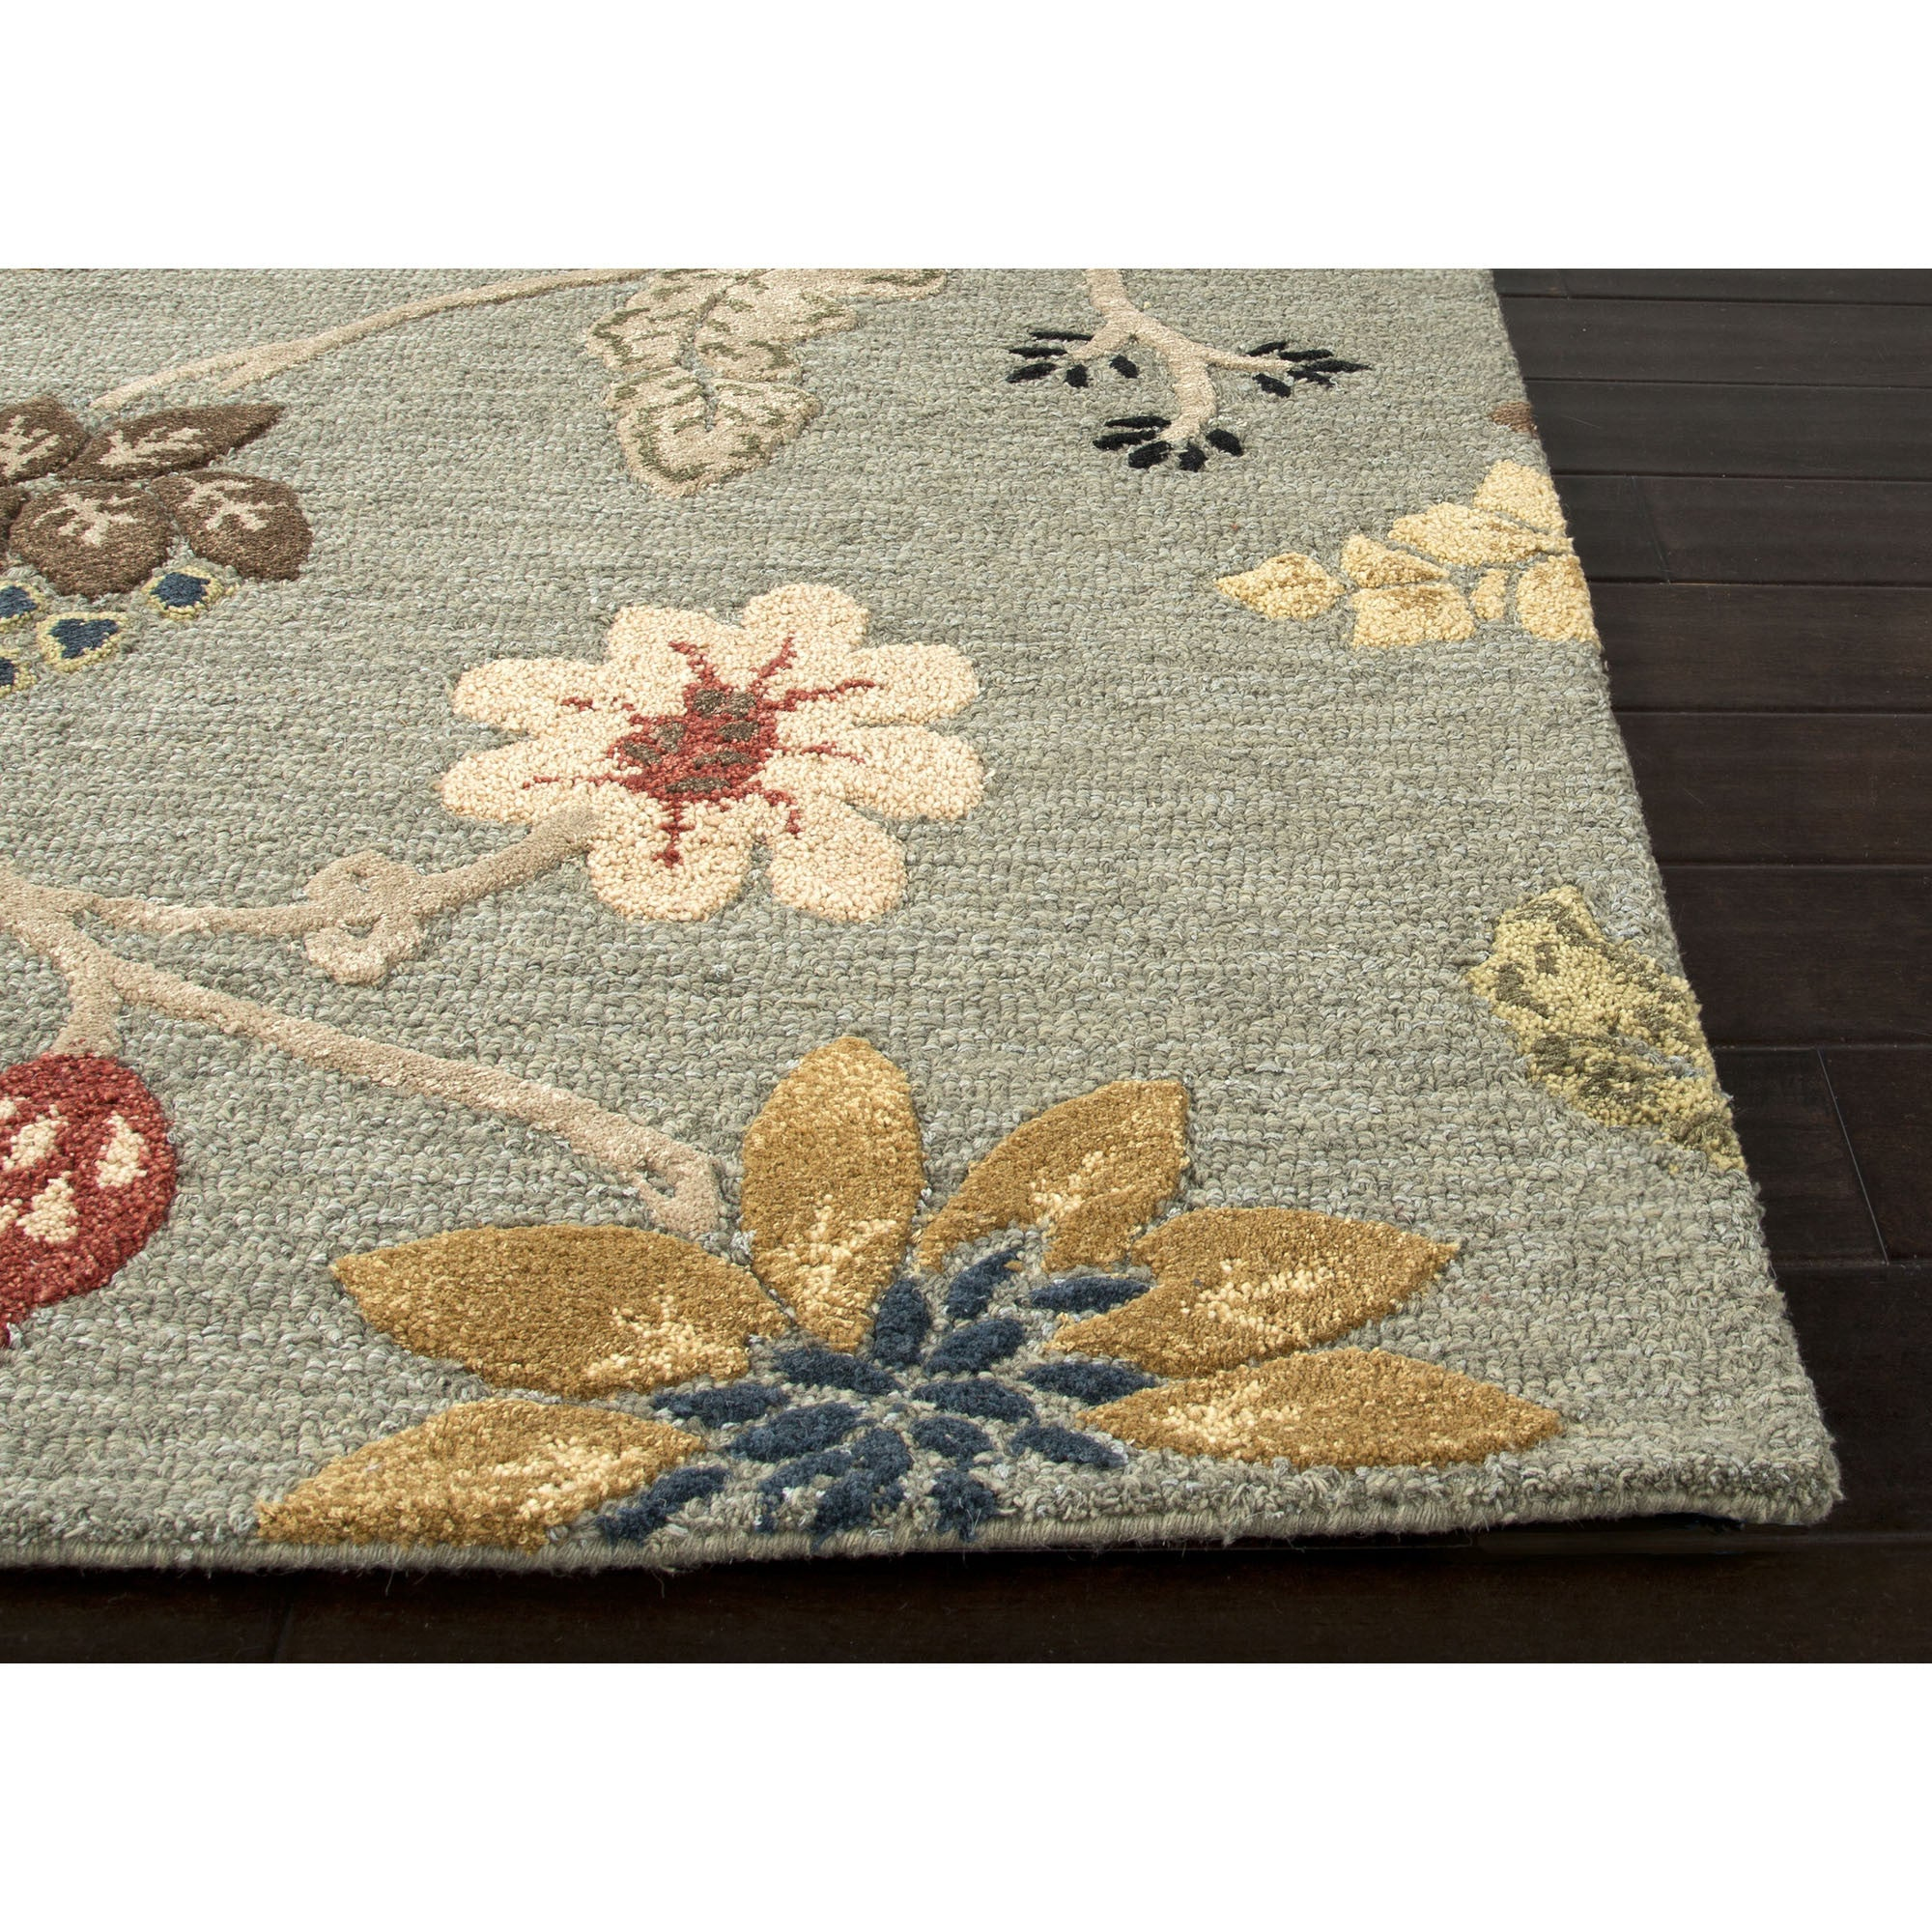 Jaipur Rugs Transitional Floral Pattern Blue Red Wool Area